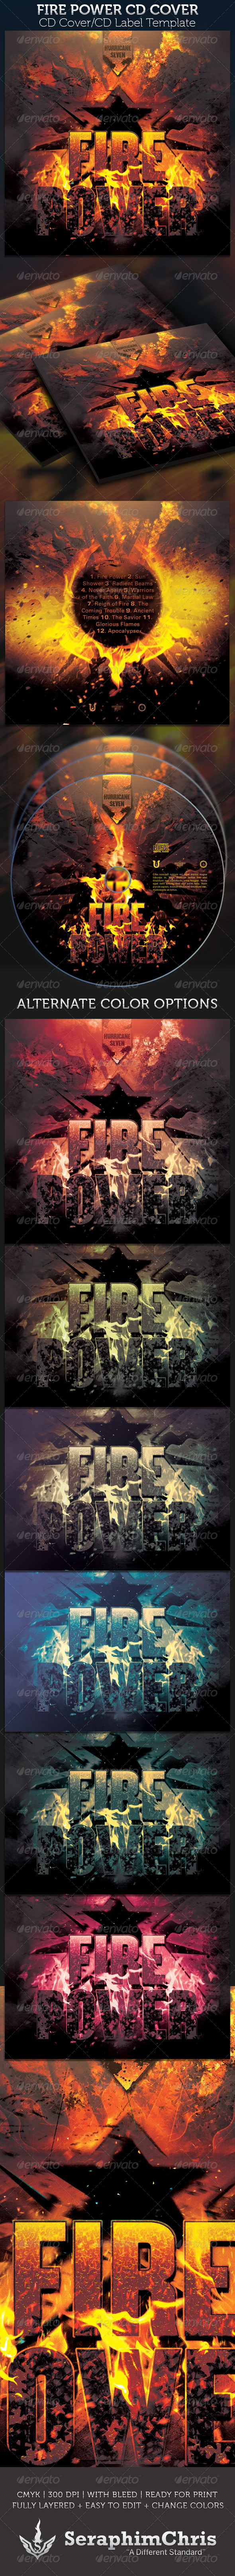 Fire Power CD Cover Template - CD & DVD artwork Print Templates